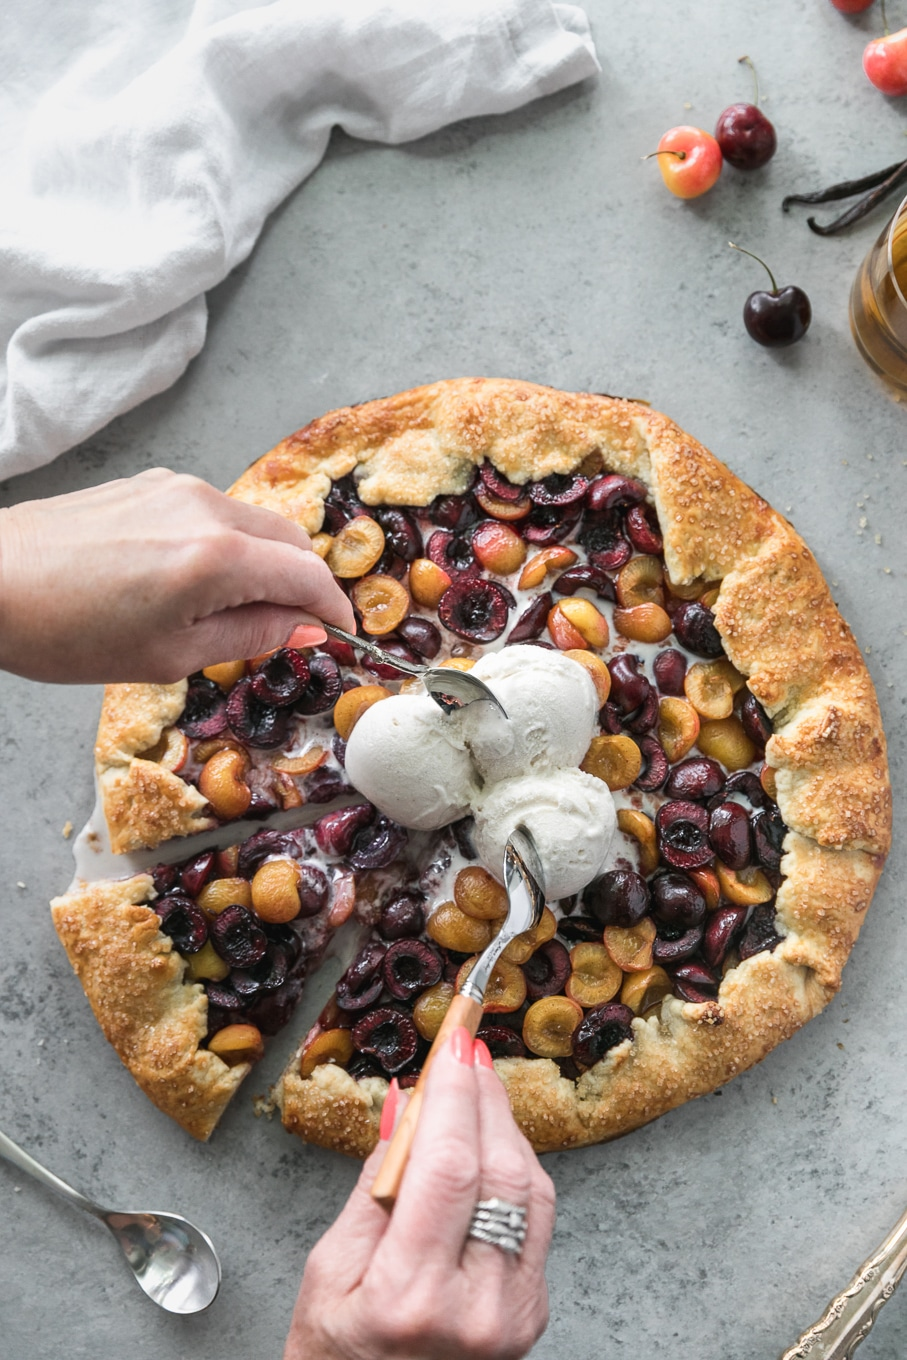 Overhead shot of a cherry galette with 3 scoops of ice cream on top with two hands reaching in with spoons to eat the ice cream